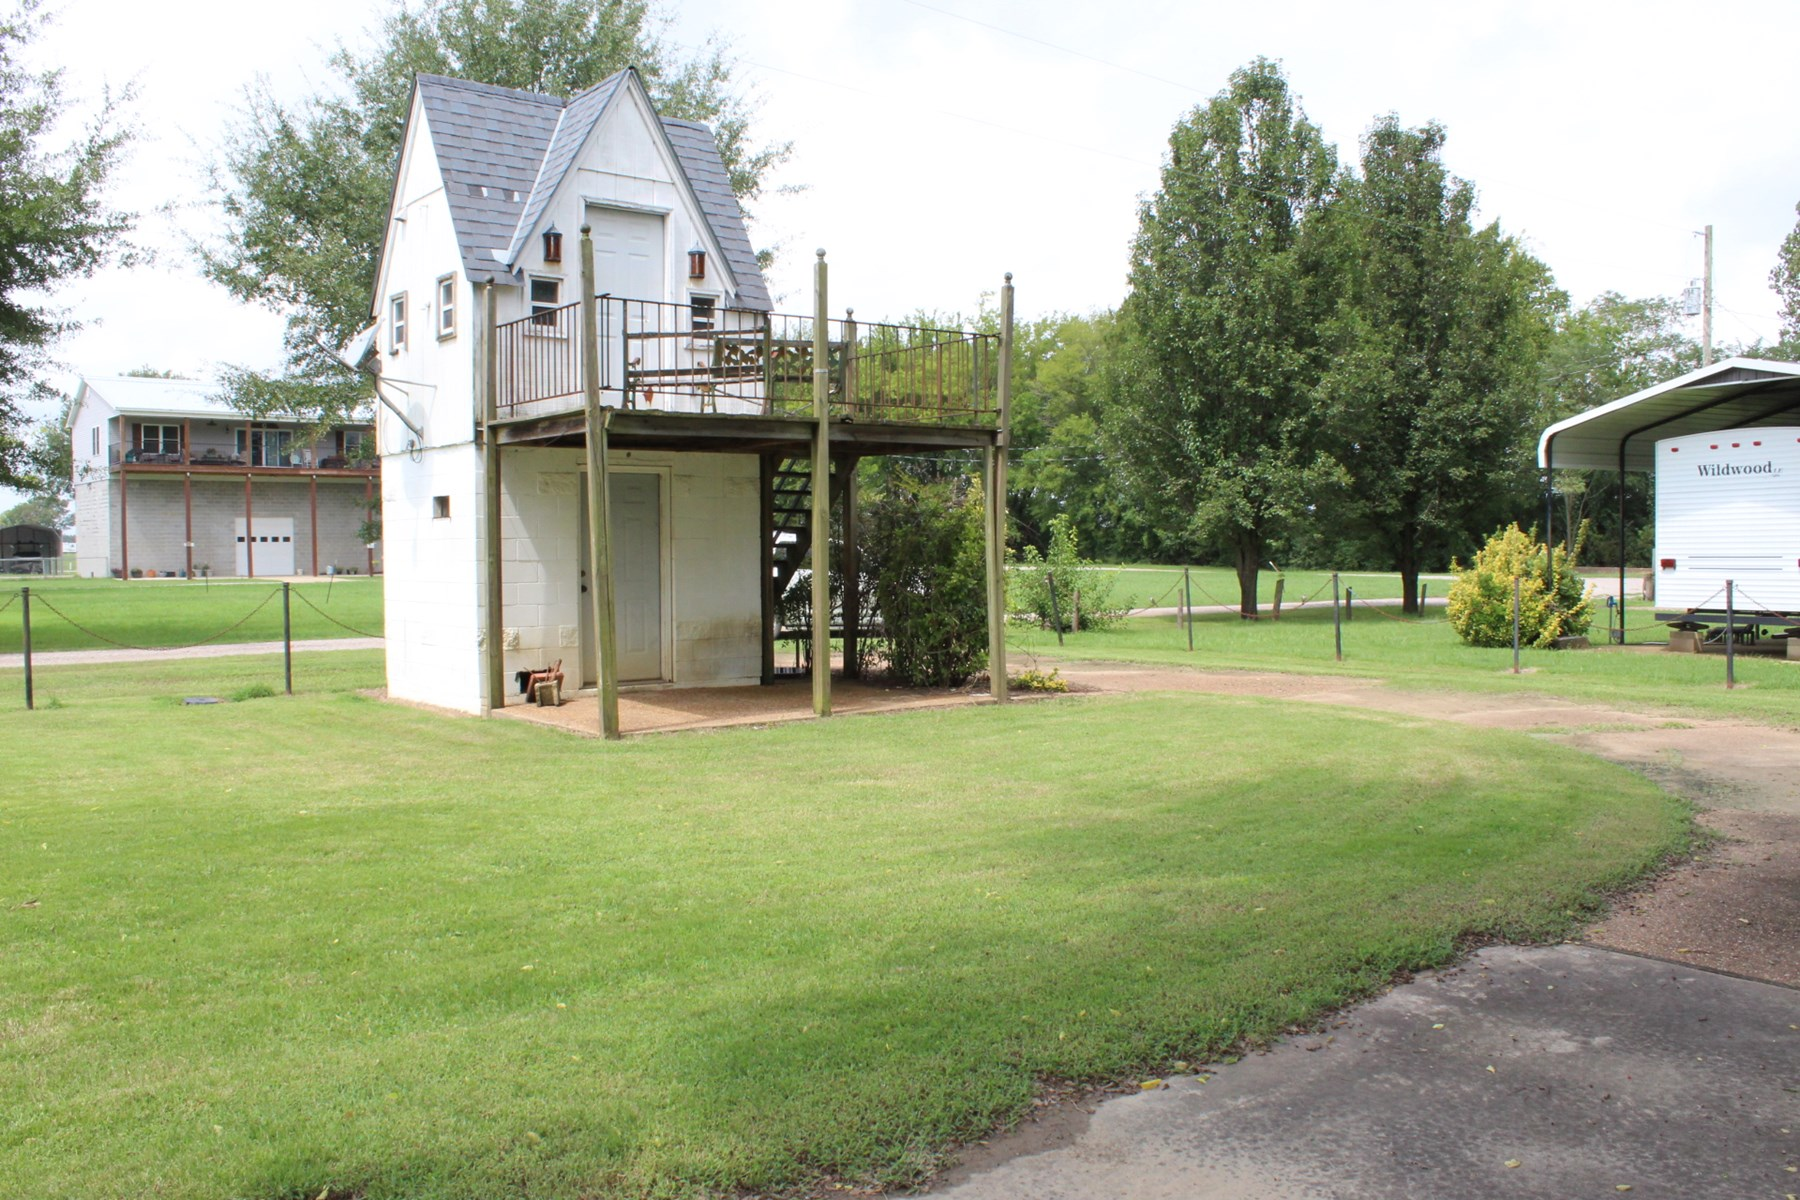 RIVERFRONT LAND IN TN WITH FIXER UPPER TINY HOME & RV HOOKUP